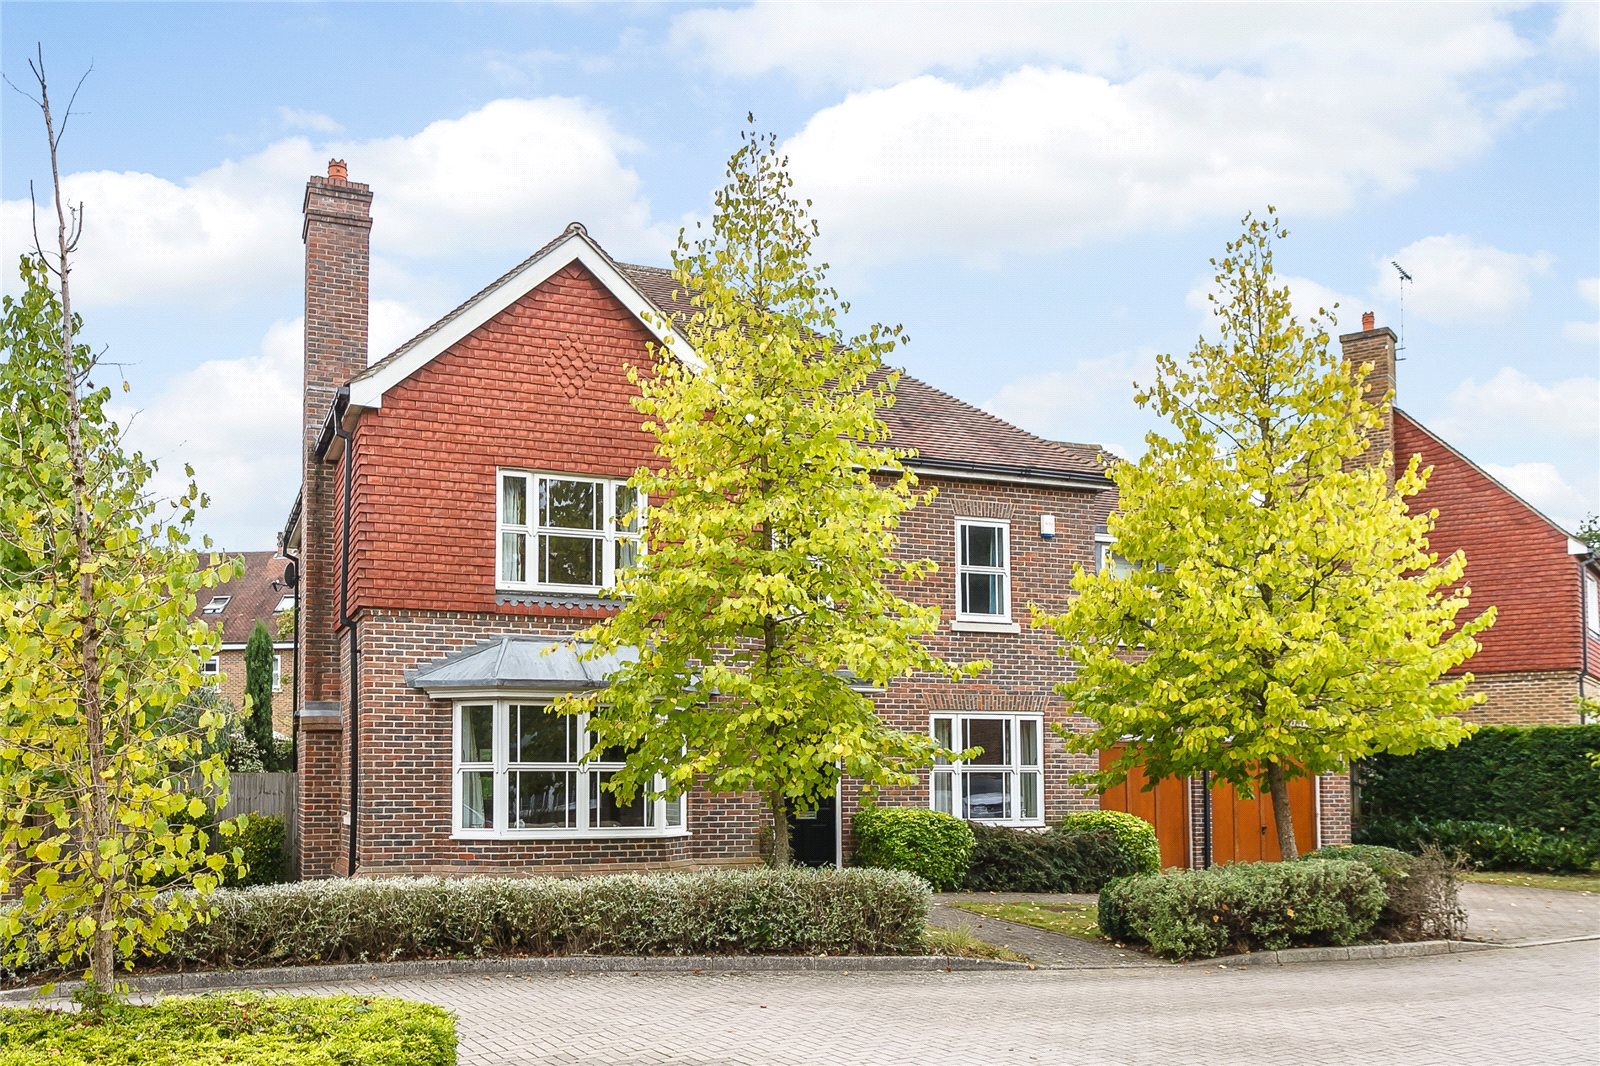 Single Family Home for Sale at Highgrove Avenue, Ascot, Berkshire, SL5 Ascot, England